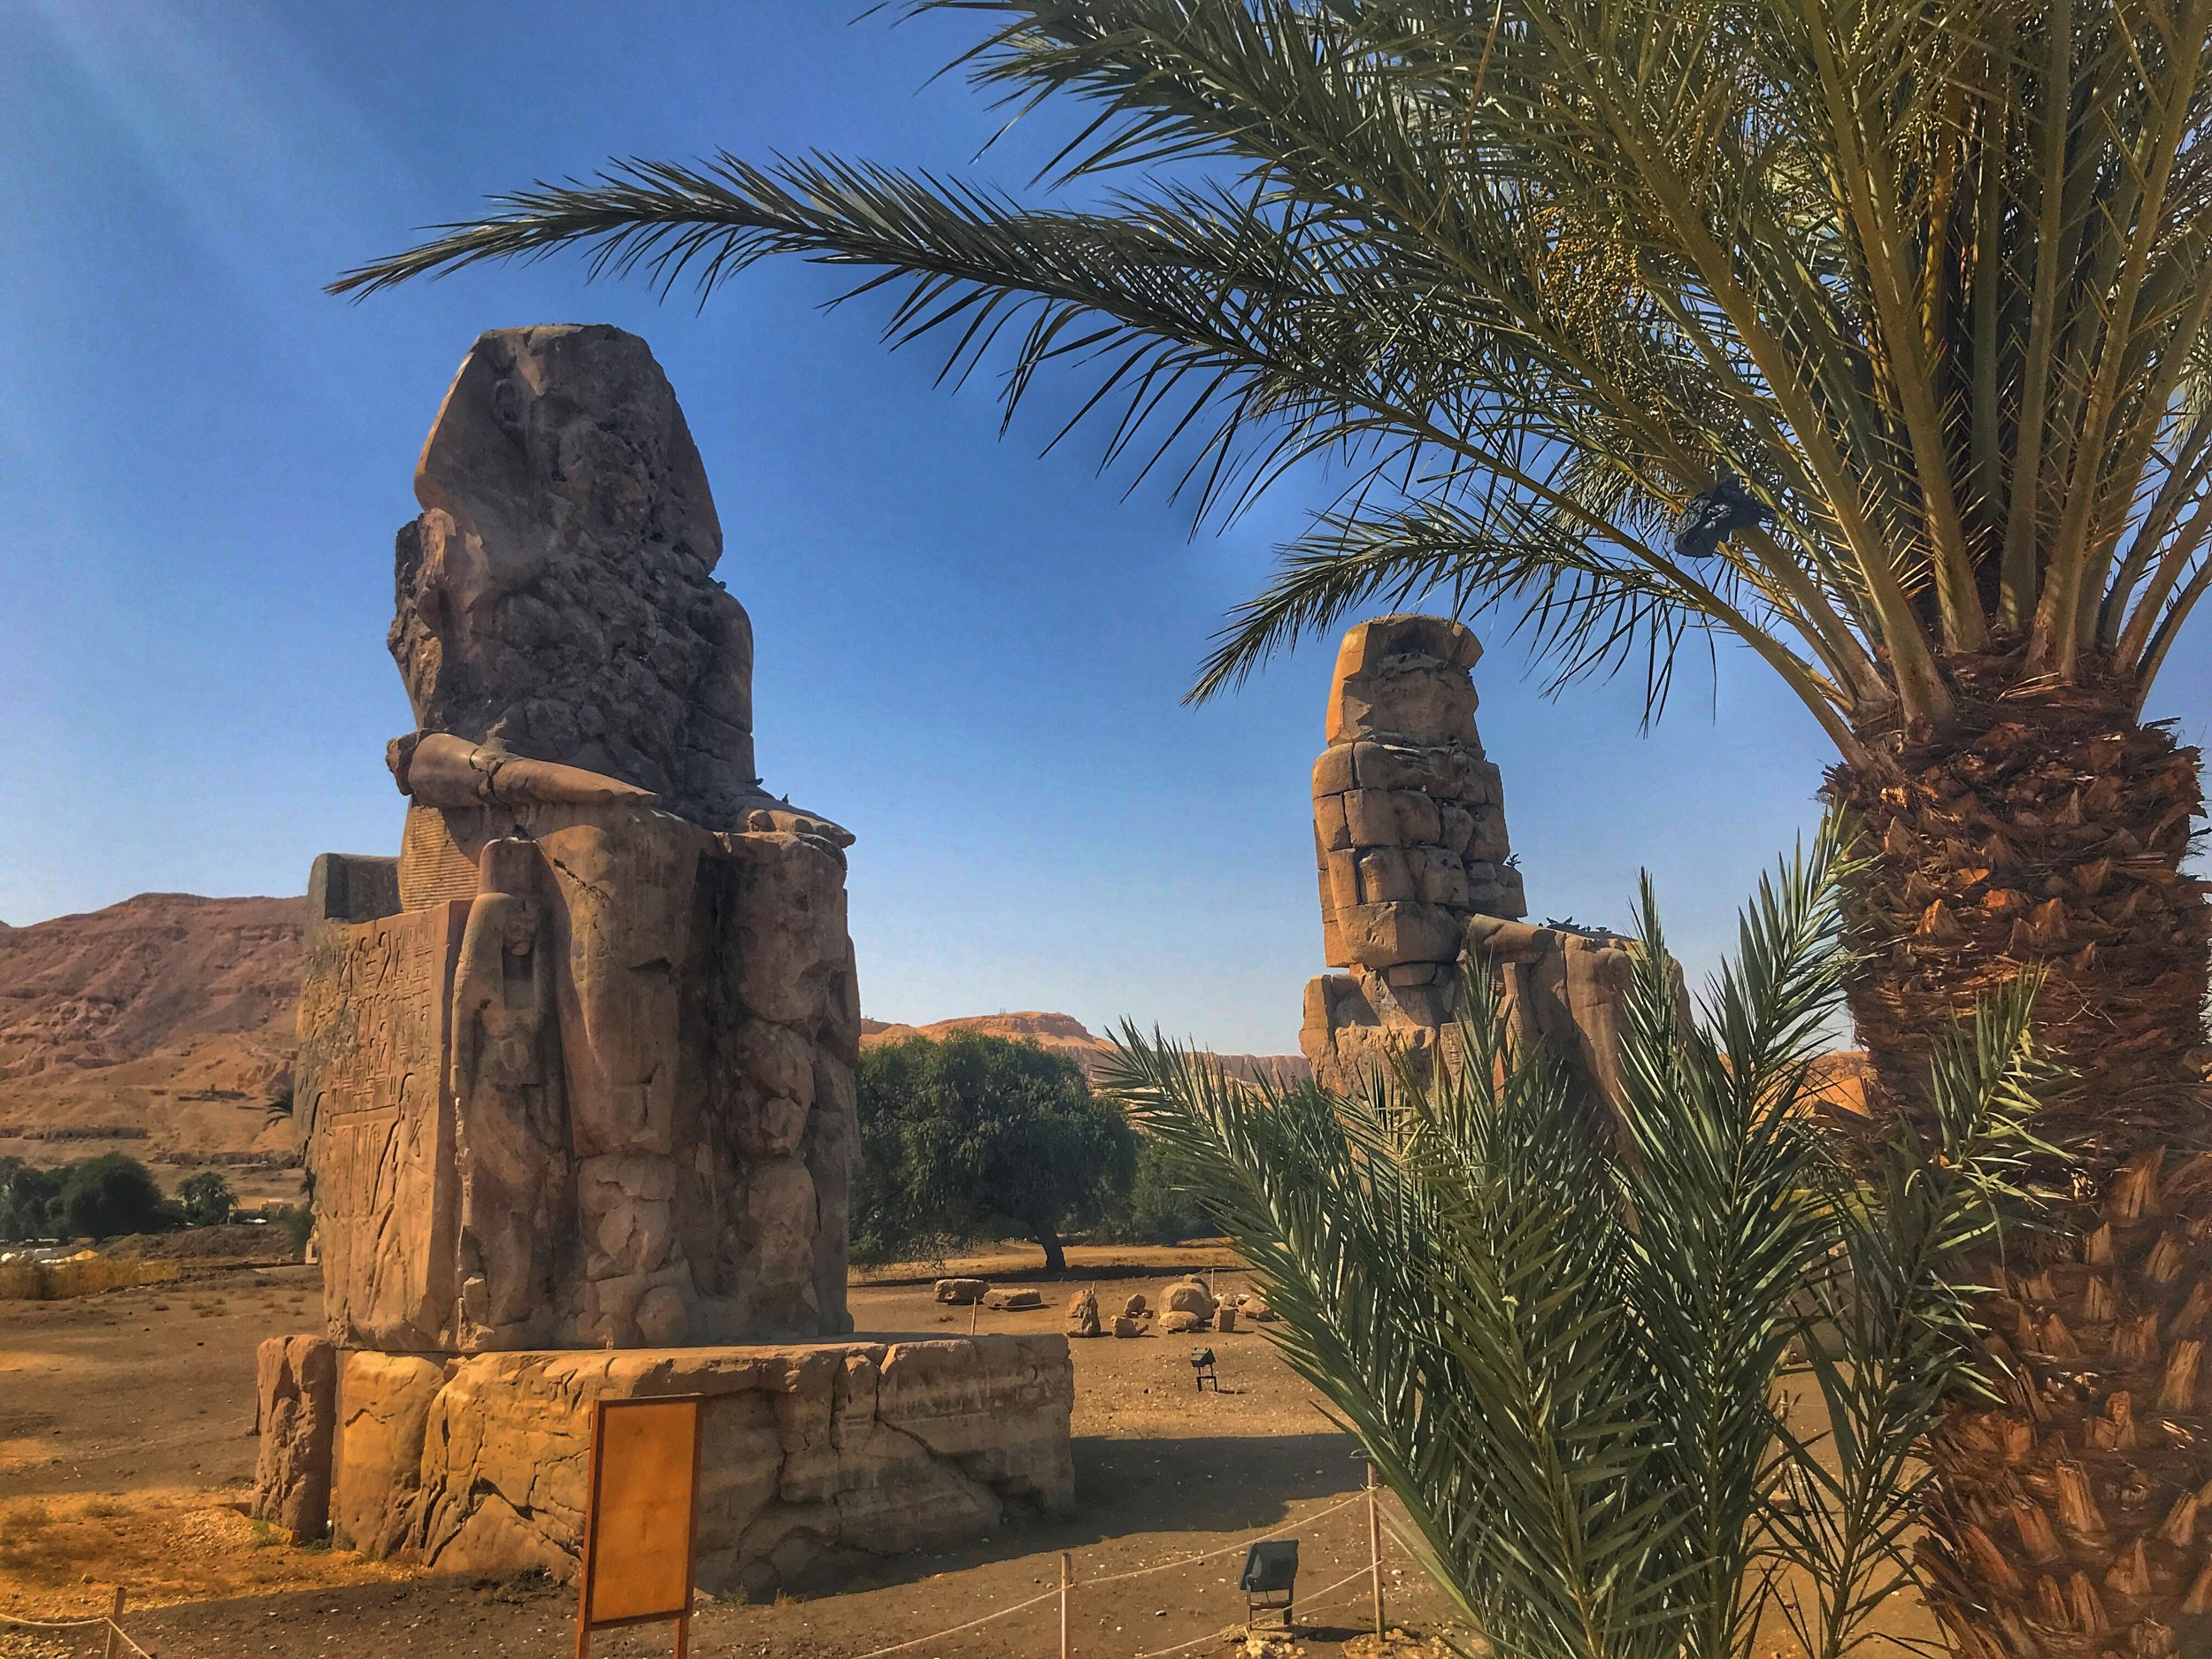 These decaying statues were once guardians of one of the most impressive temples in Egypt